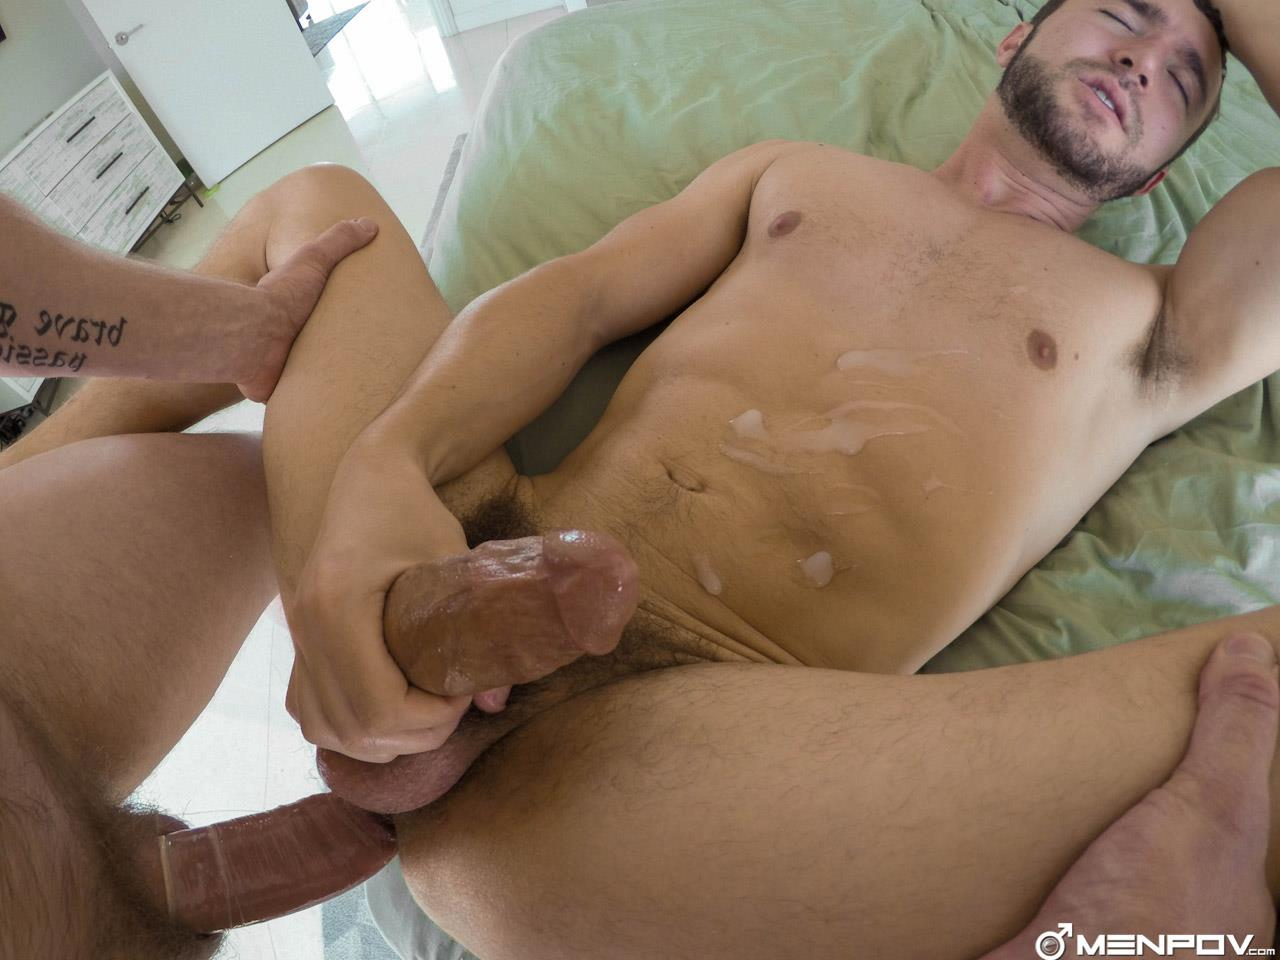 MenPOV-Colt-Rivers-and-Adam-Herst-Daddy-Fucking-His-Boy-Toy-With-A-Thick-Cock-Amateur-Gay-Porn-25 Muscular Daddy Fucking His Boy Toy With His Thick Hard Cock